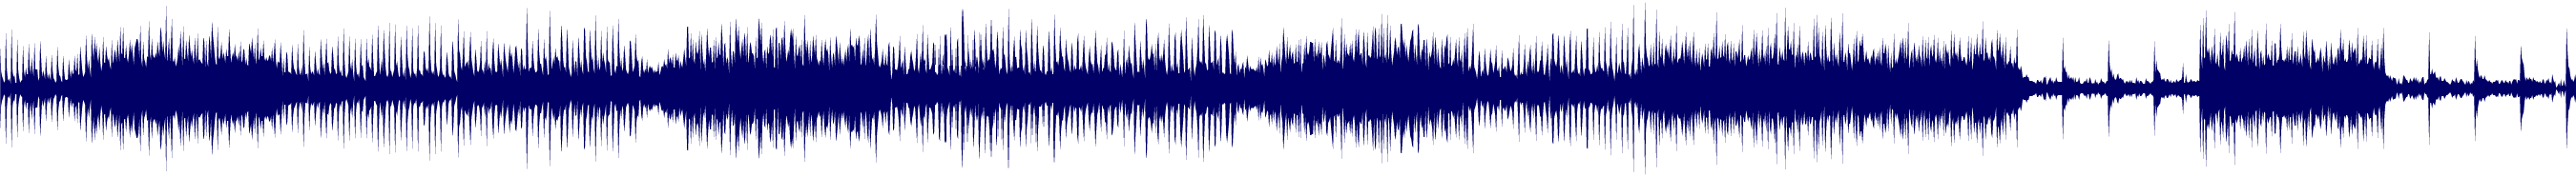 waveform of track #73552